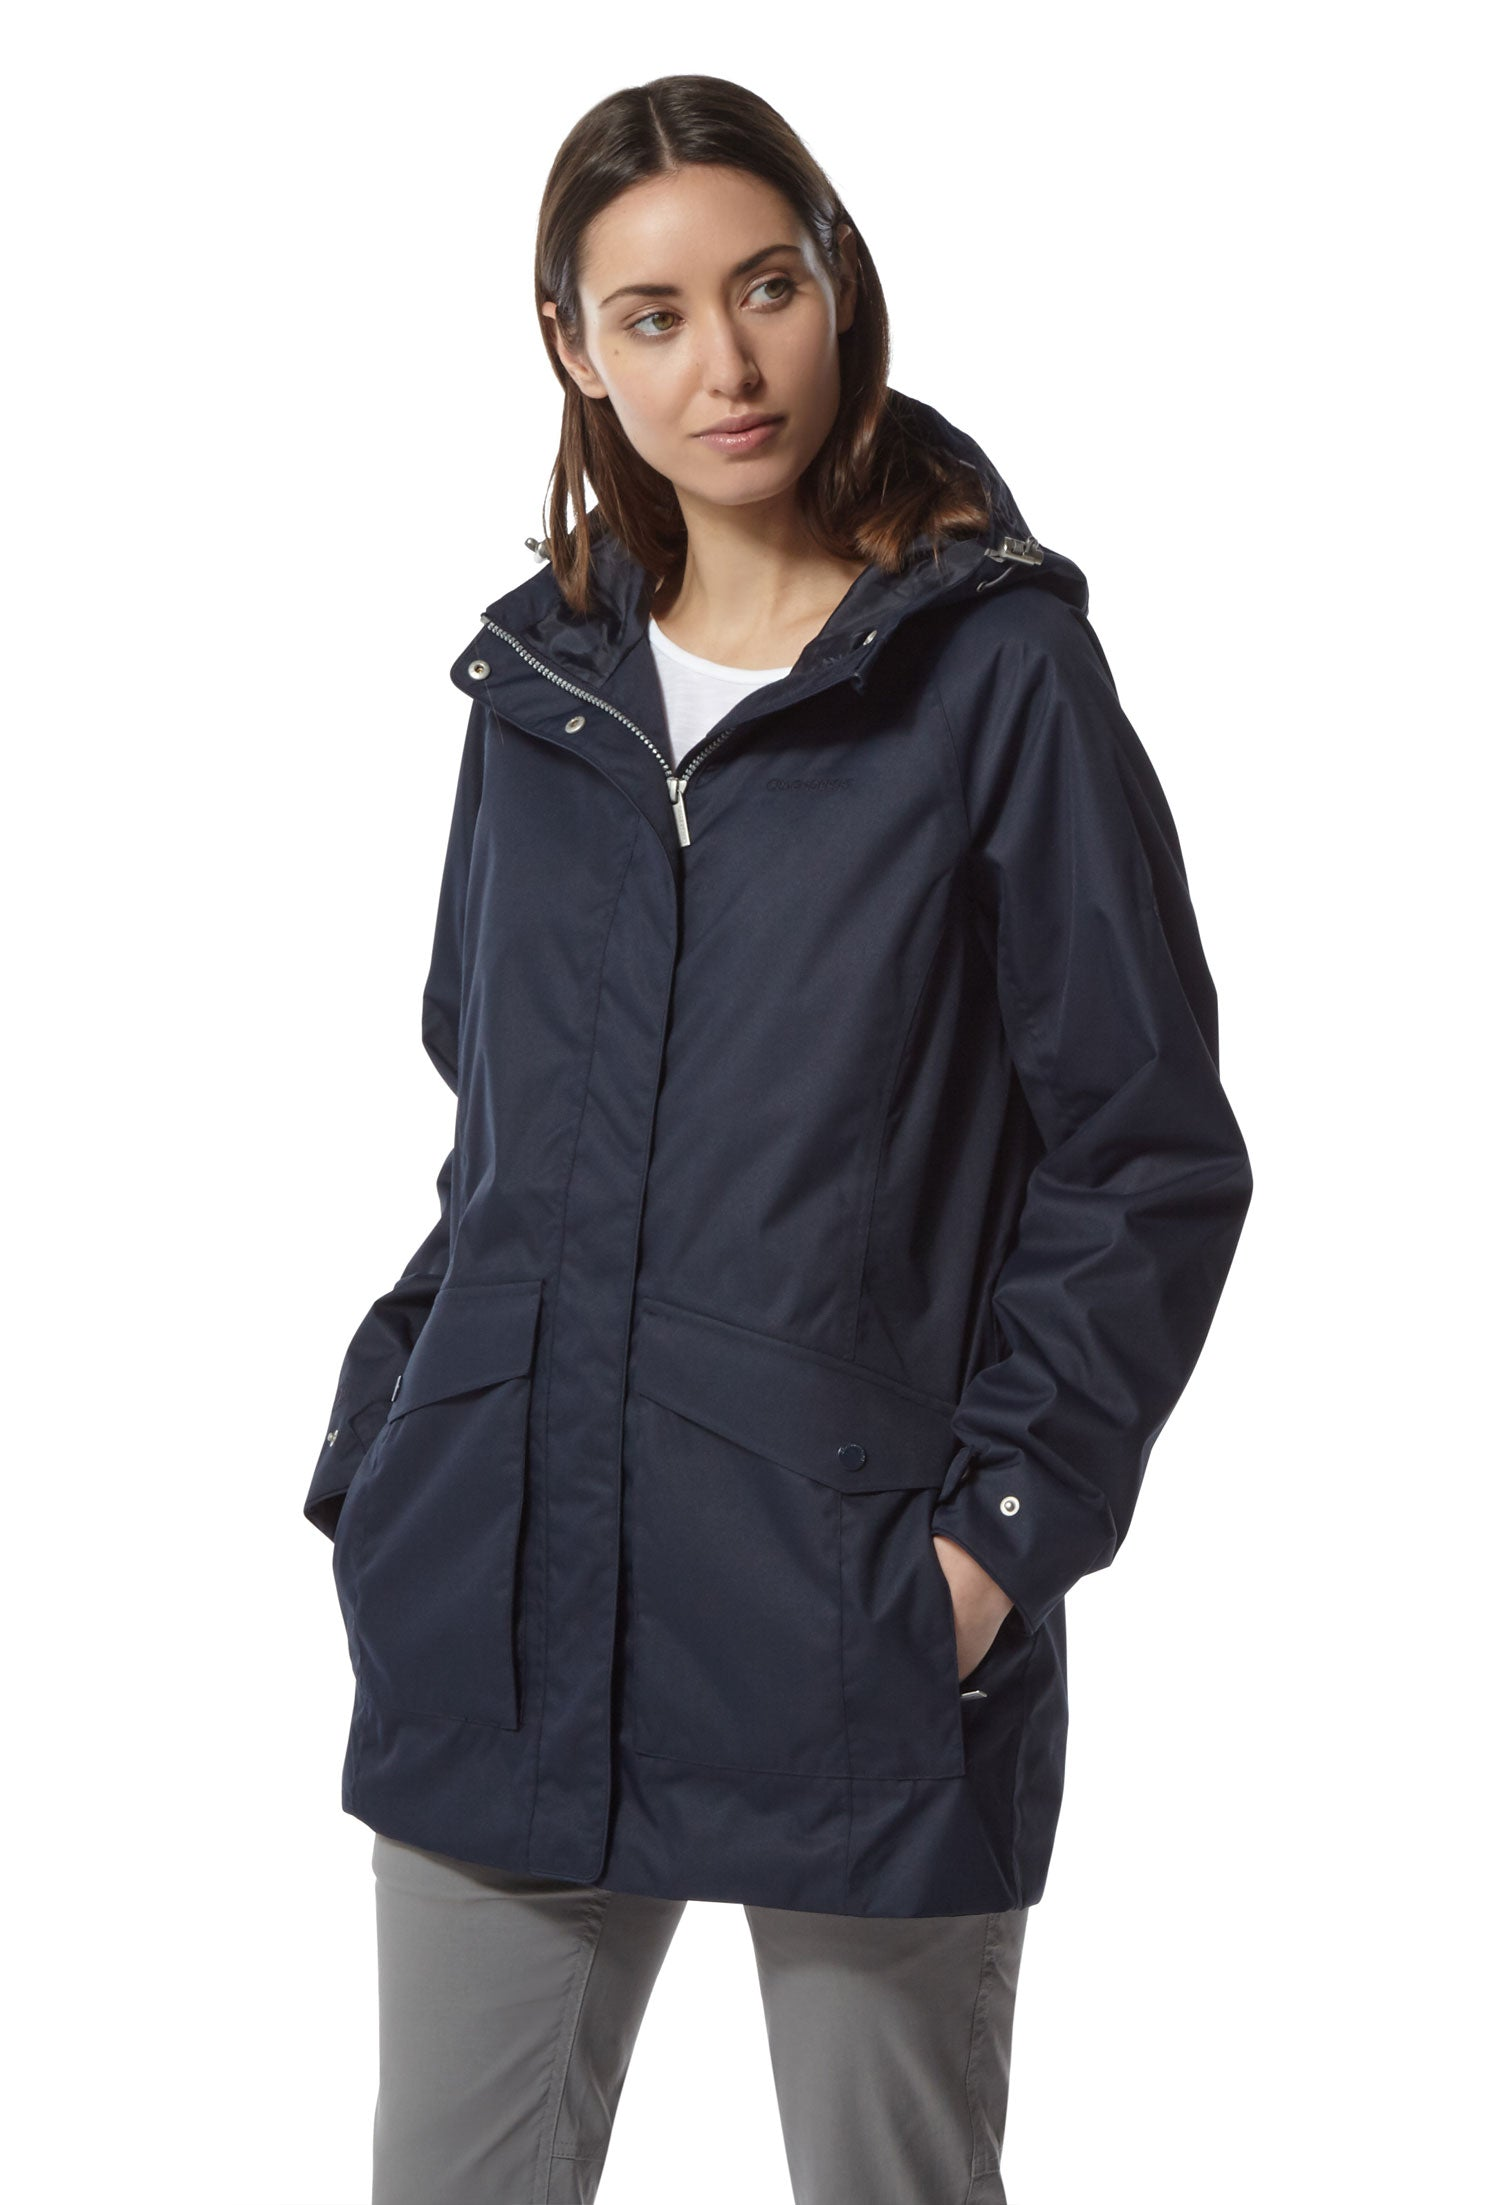 Madigan Waterproof Ladies Jacket by Craghoppers